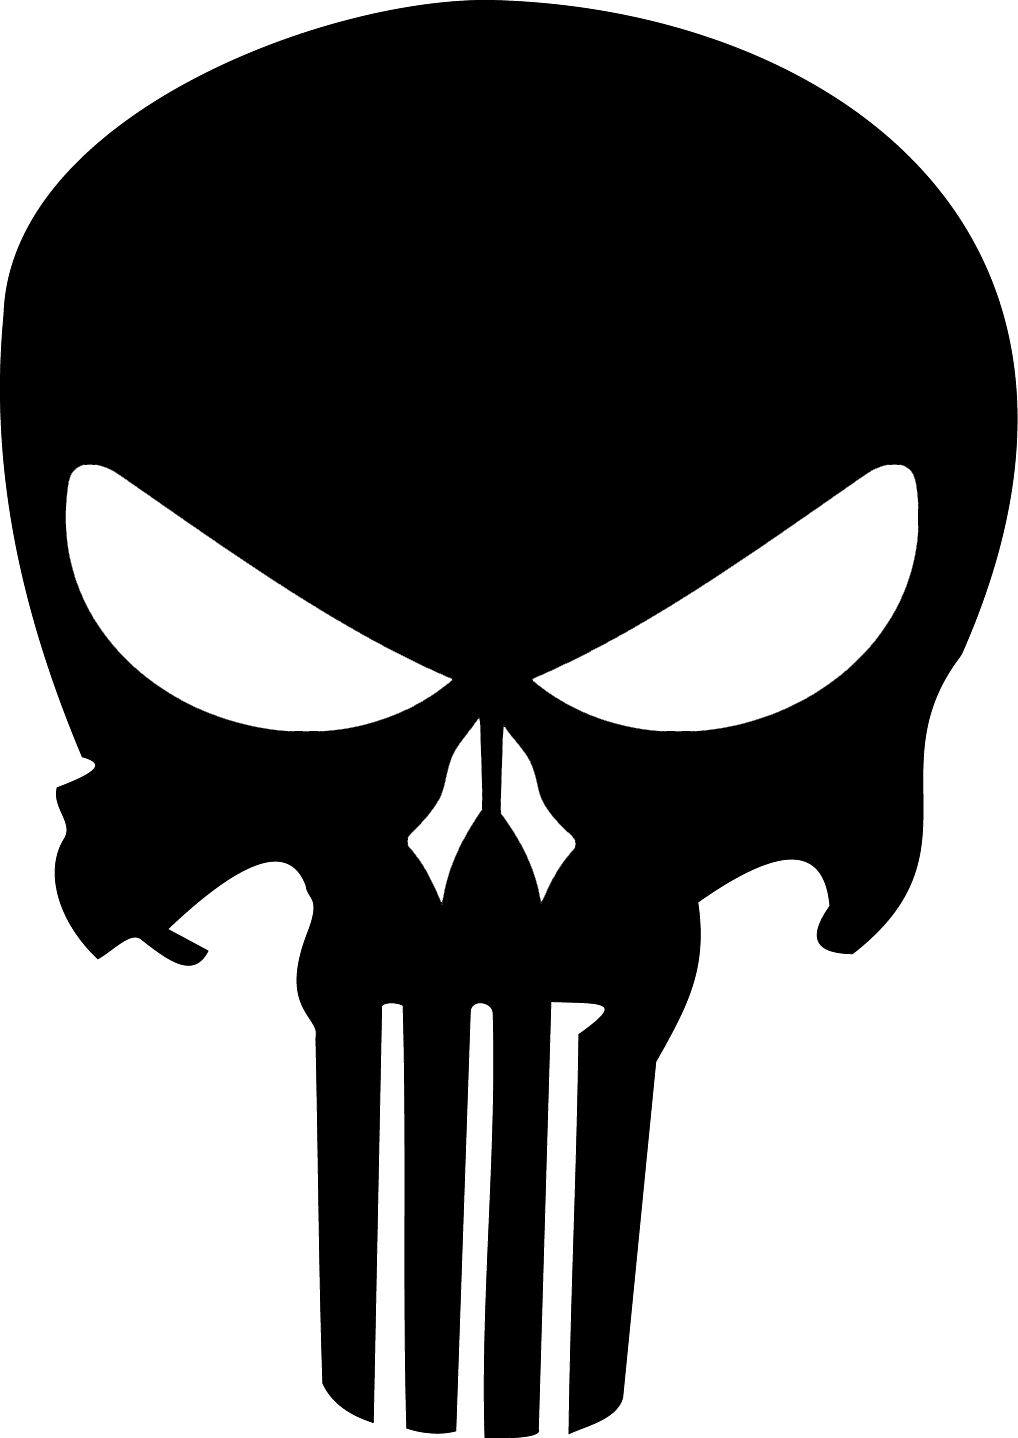 punisher logo vector icon template clipart free download